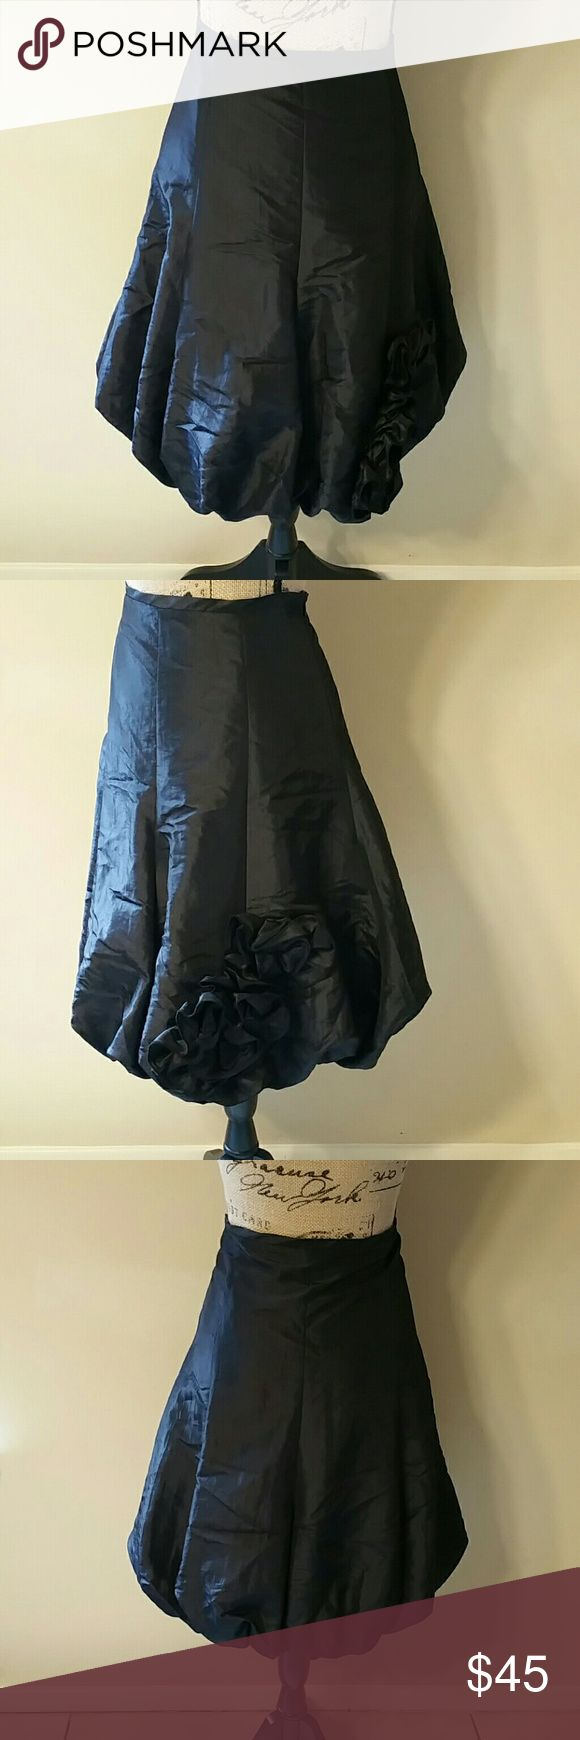 """{Joseph Ribkoff} Black Jupe Puff Skirt Cute black jupe puff skirt by Joseph Ribkoff. Has flowers designs in the front. Ruffle detail. Narrows at the end of the skirt. Size 6. In good used condition.  No tears or stains. Measurements - Waist: 15"""", Hips: 23.5"""", Length: 23"""" Joseph Ribkoff Skirts Circle & Skater"""